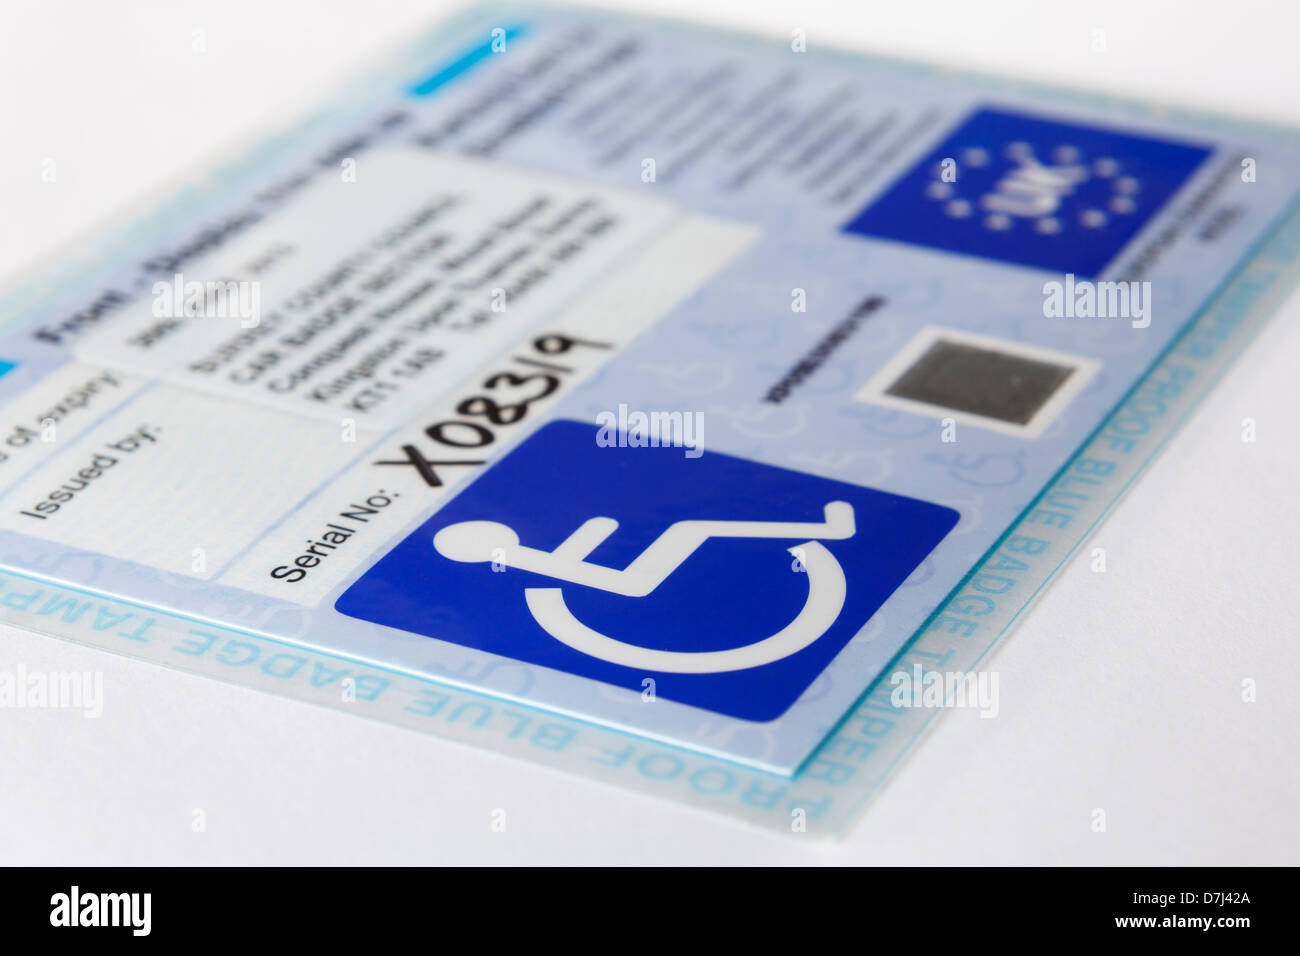 Blue badge card with wheelchair symbol for disabled parking concessions scheme. England, UK, Britain, Europe. - Stock Image